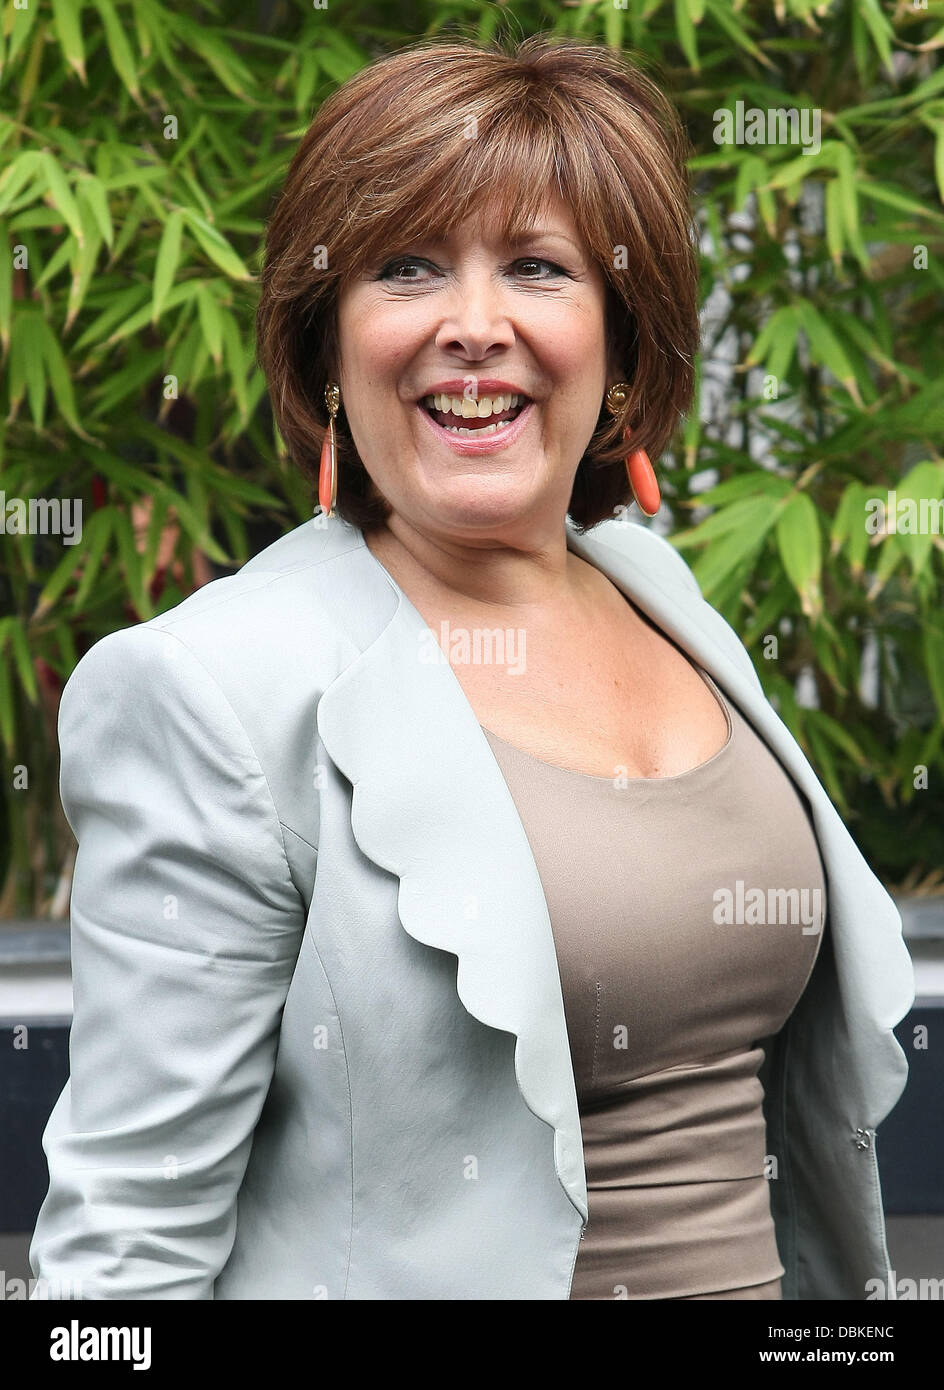 Lynda Bellingham nude photos 2019